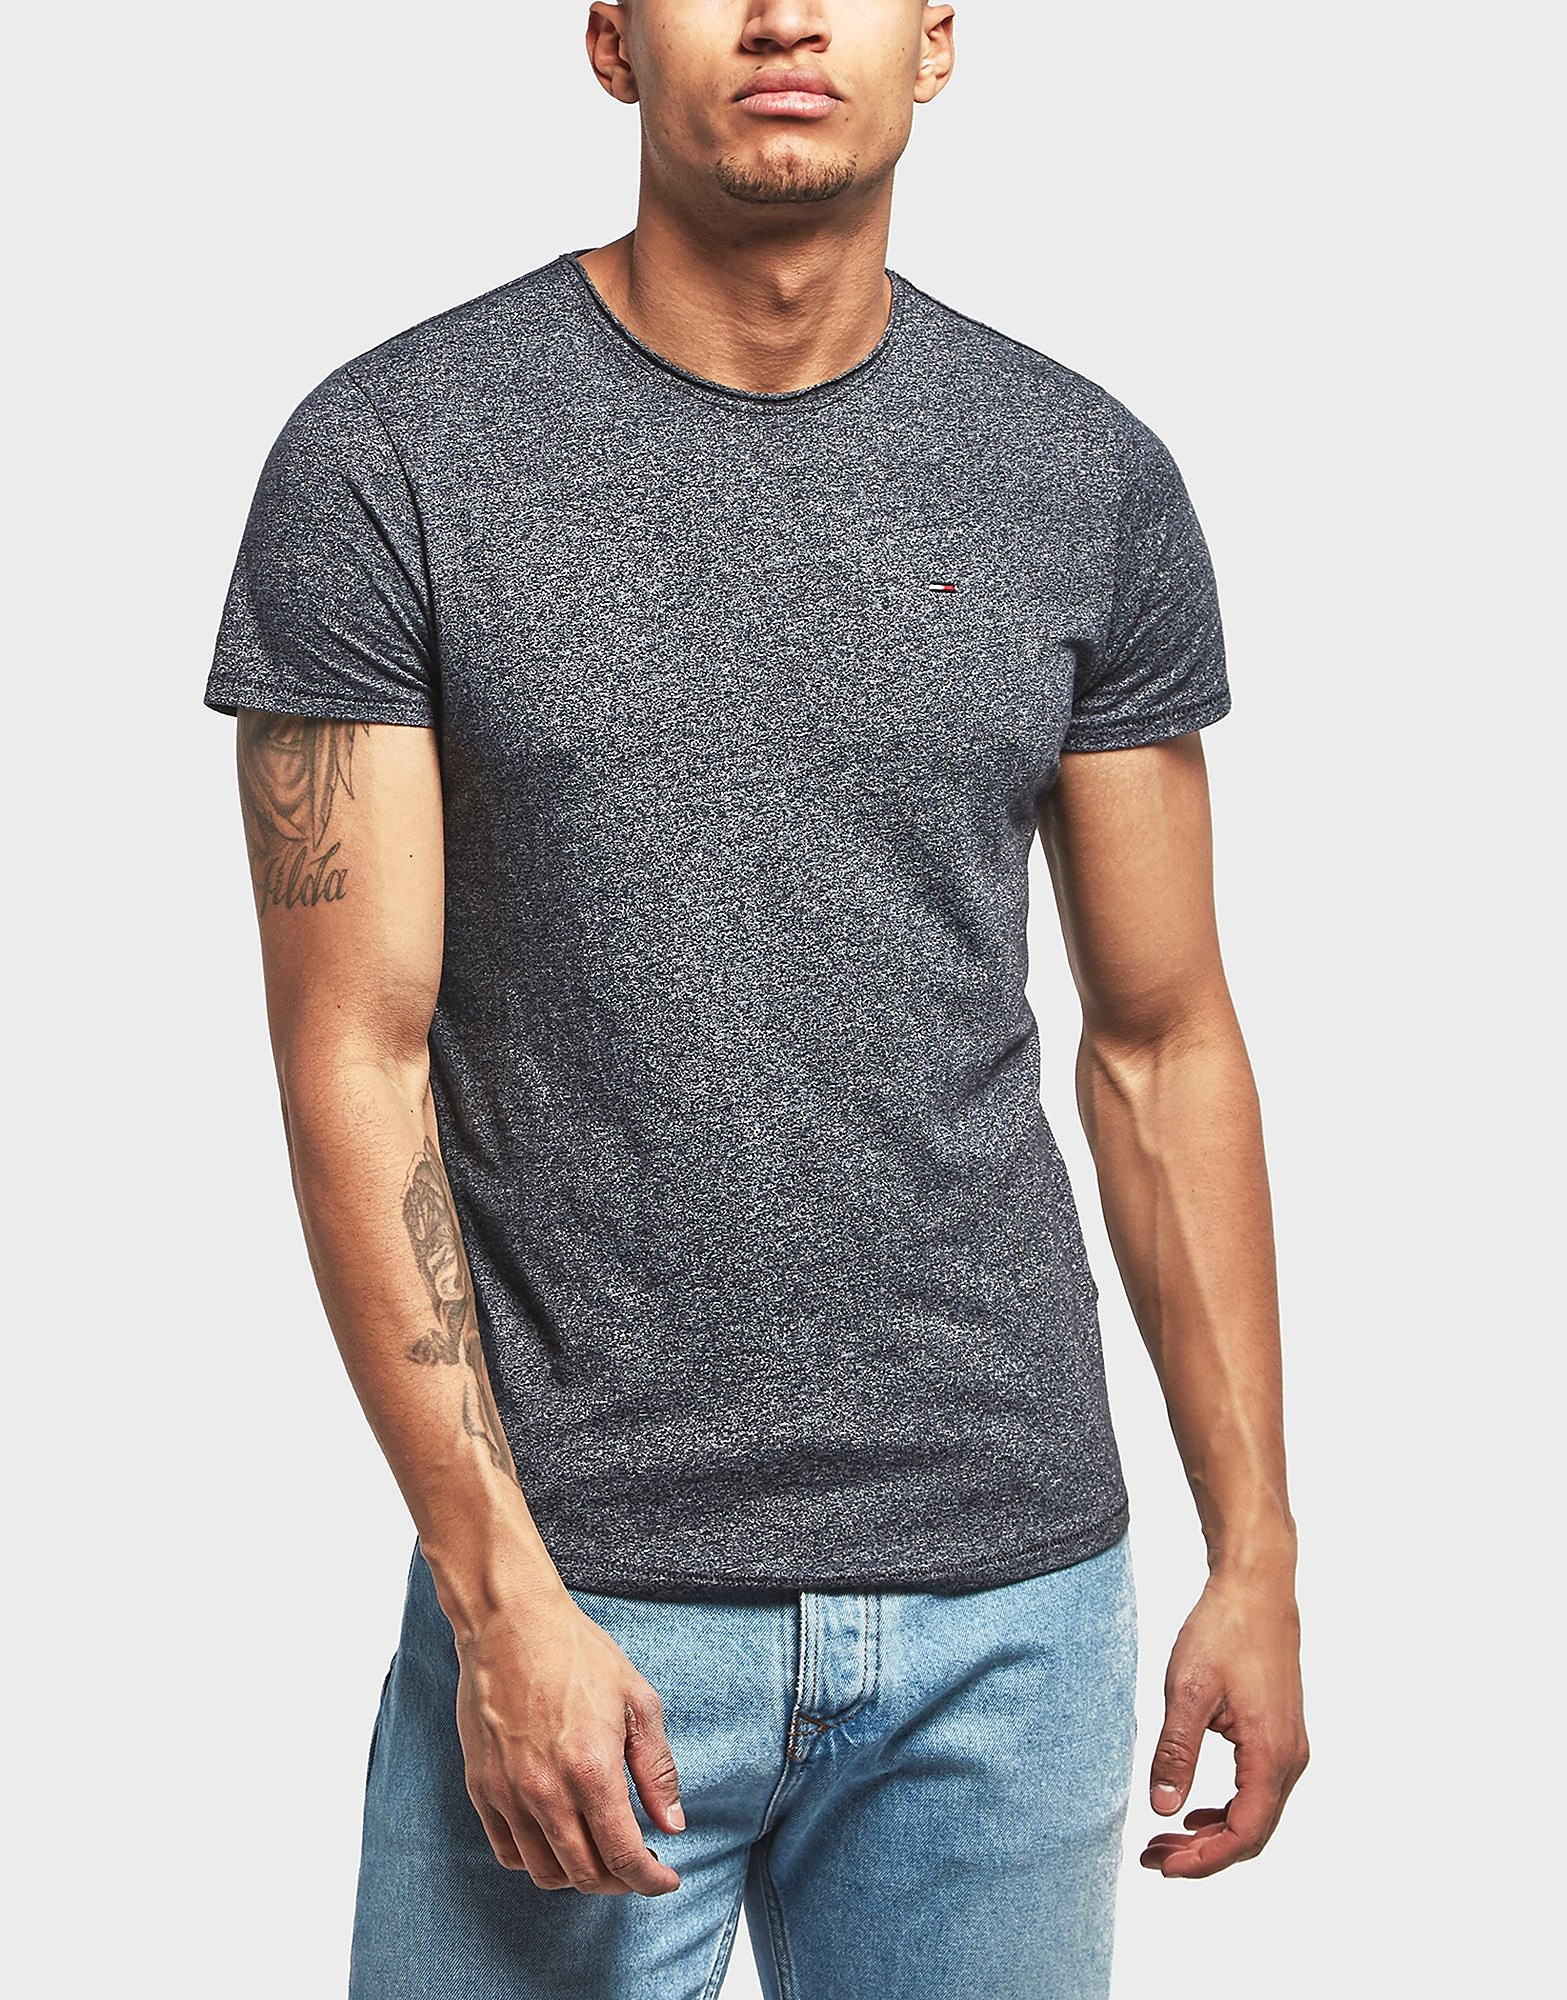 Tommy Hilfiger Crew Short Sleeve T-Shirt